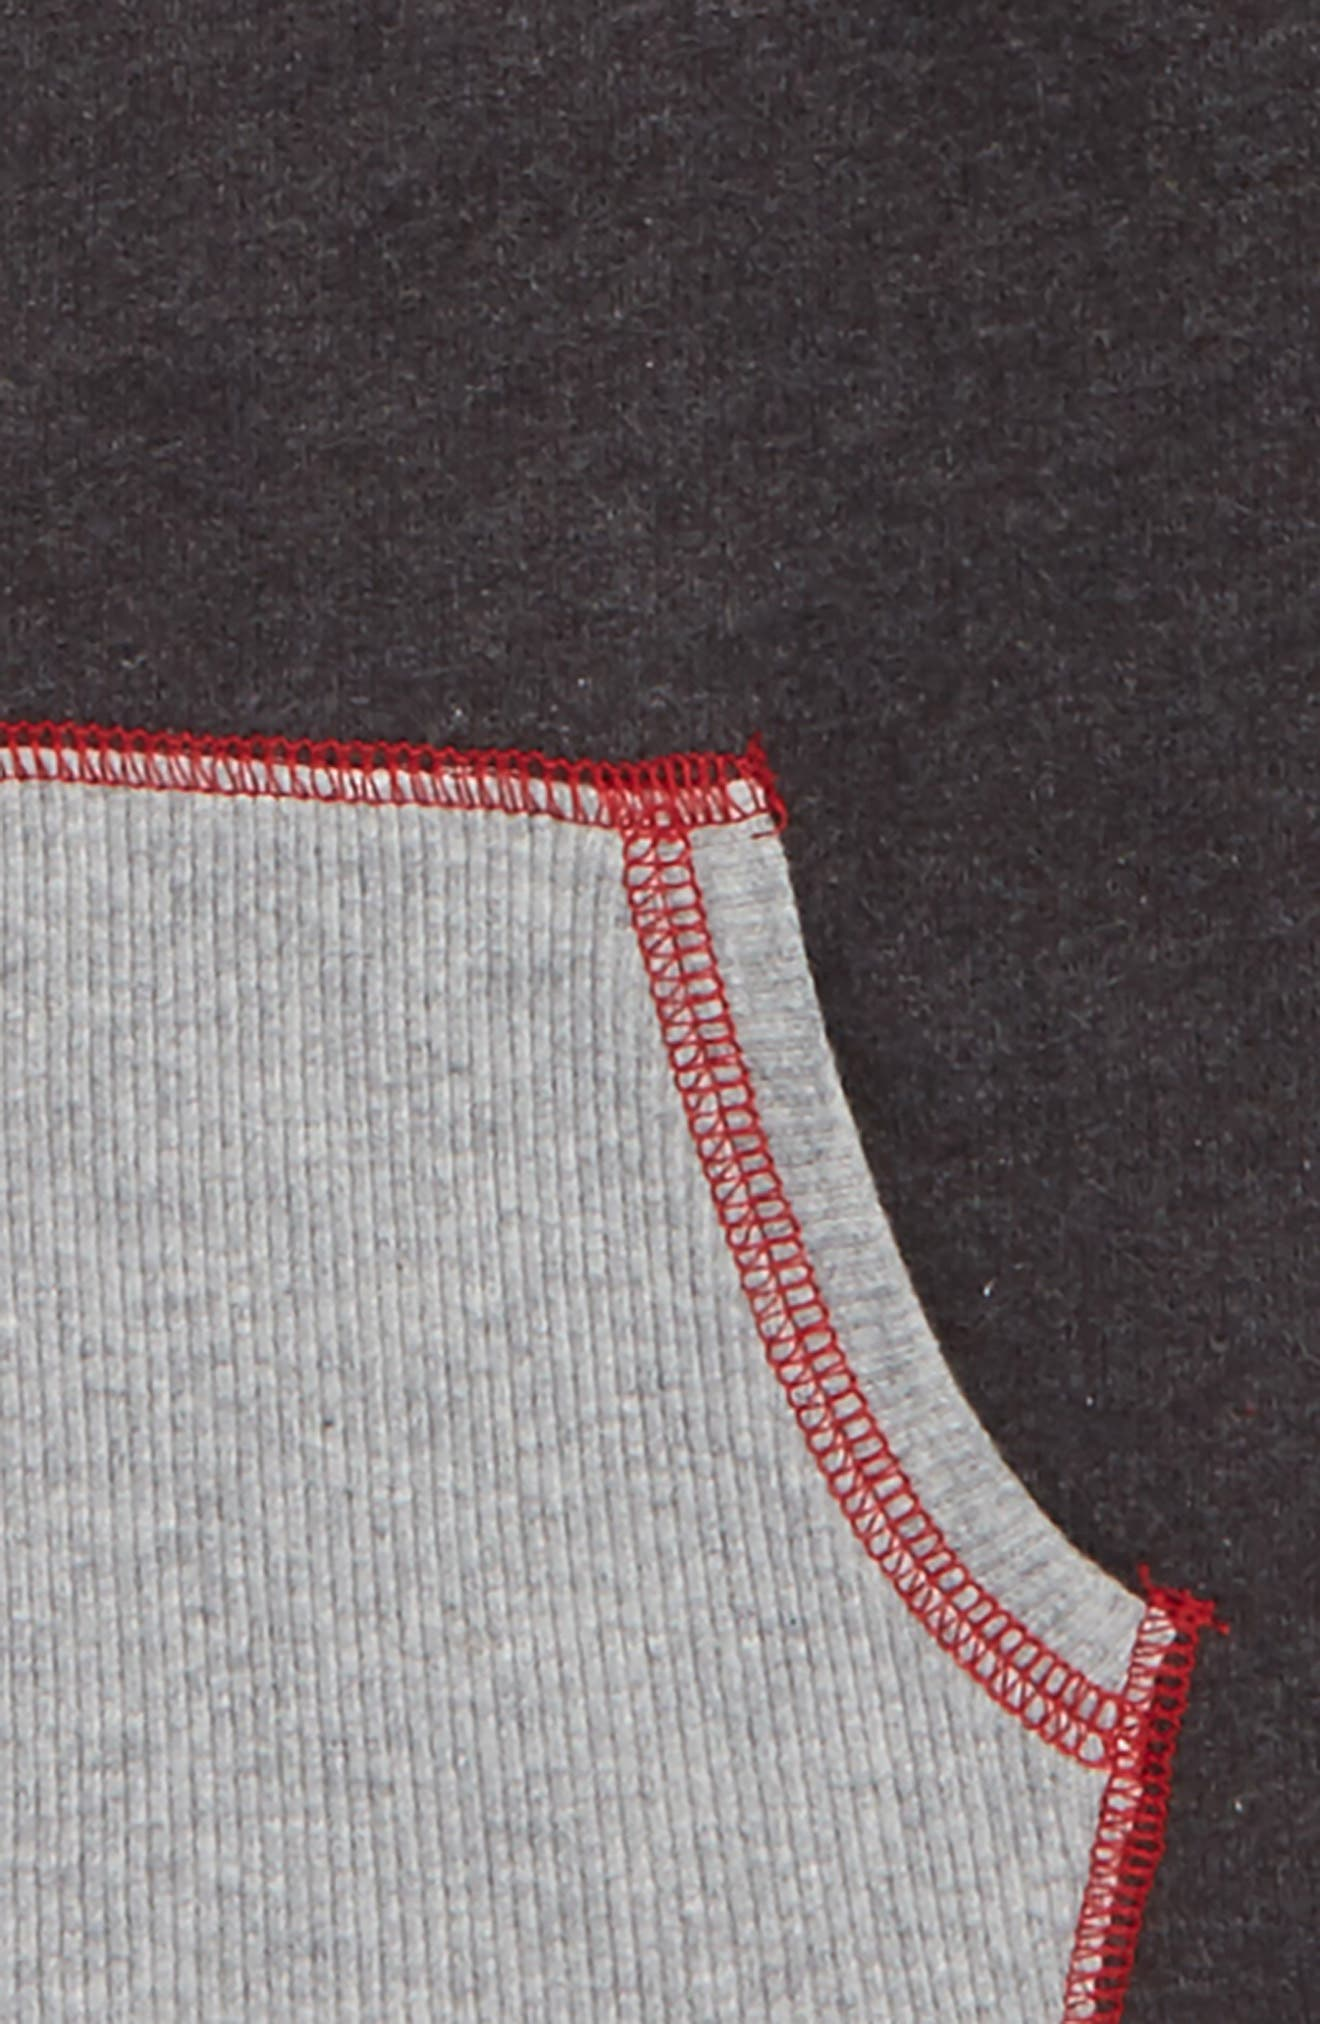 French Terry Organic Cotton Hoodie,                             Alternate thumbnail 2, color,                             024